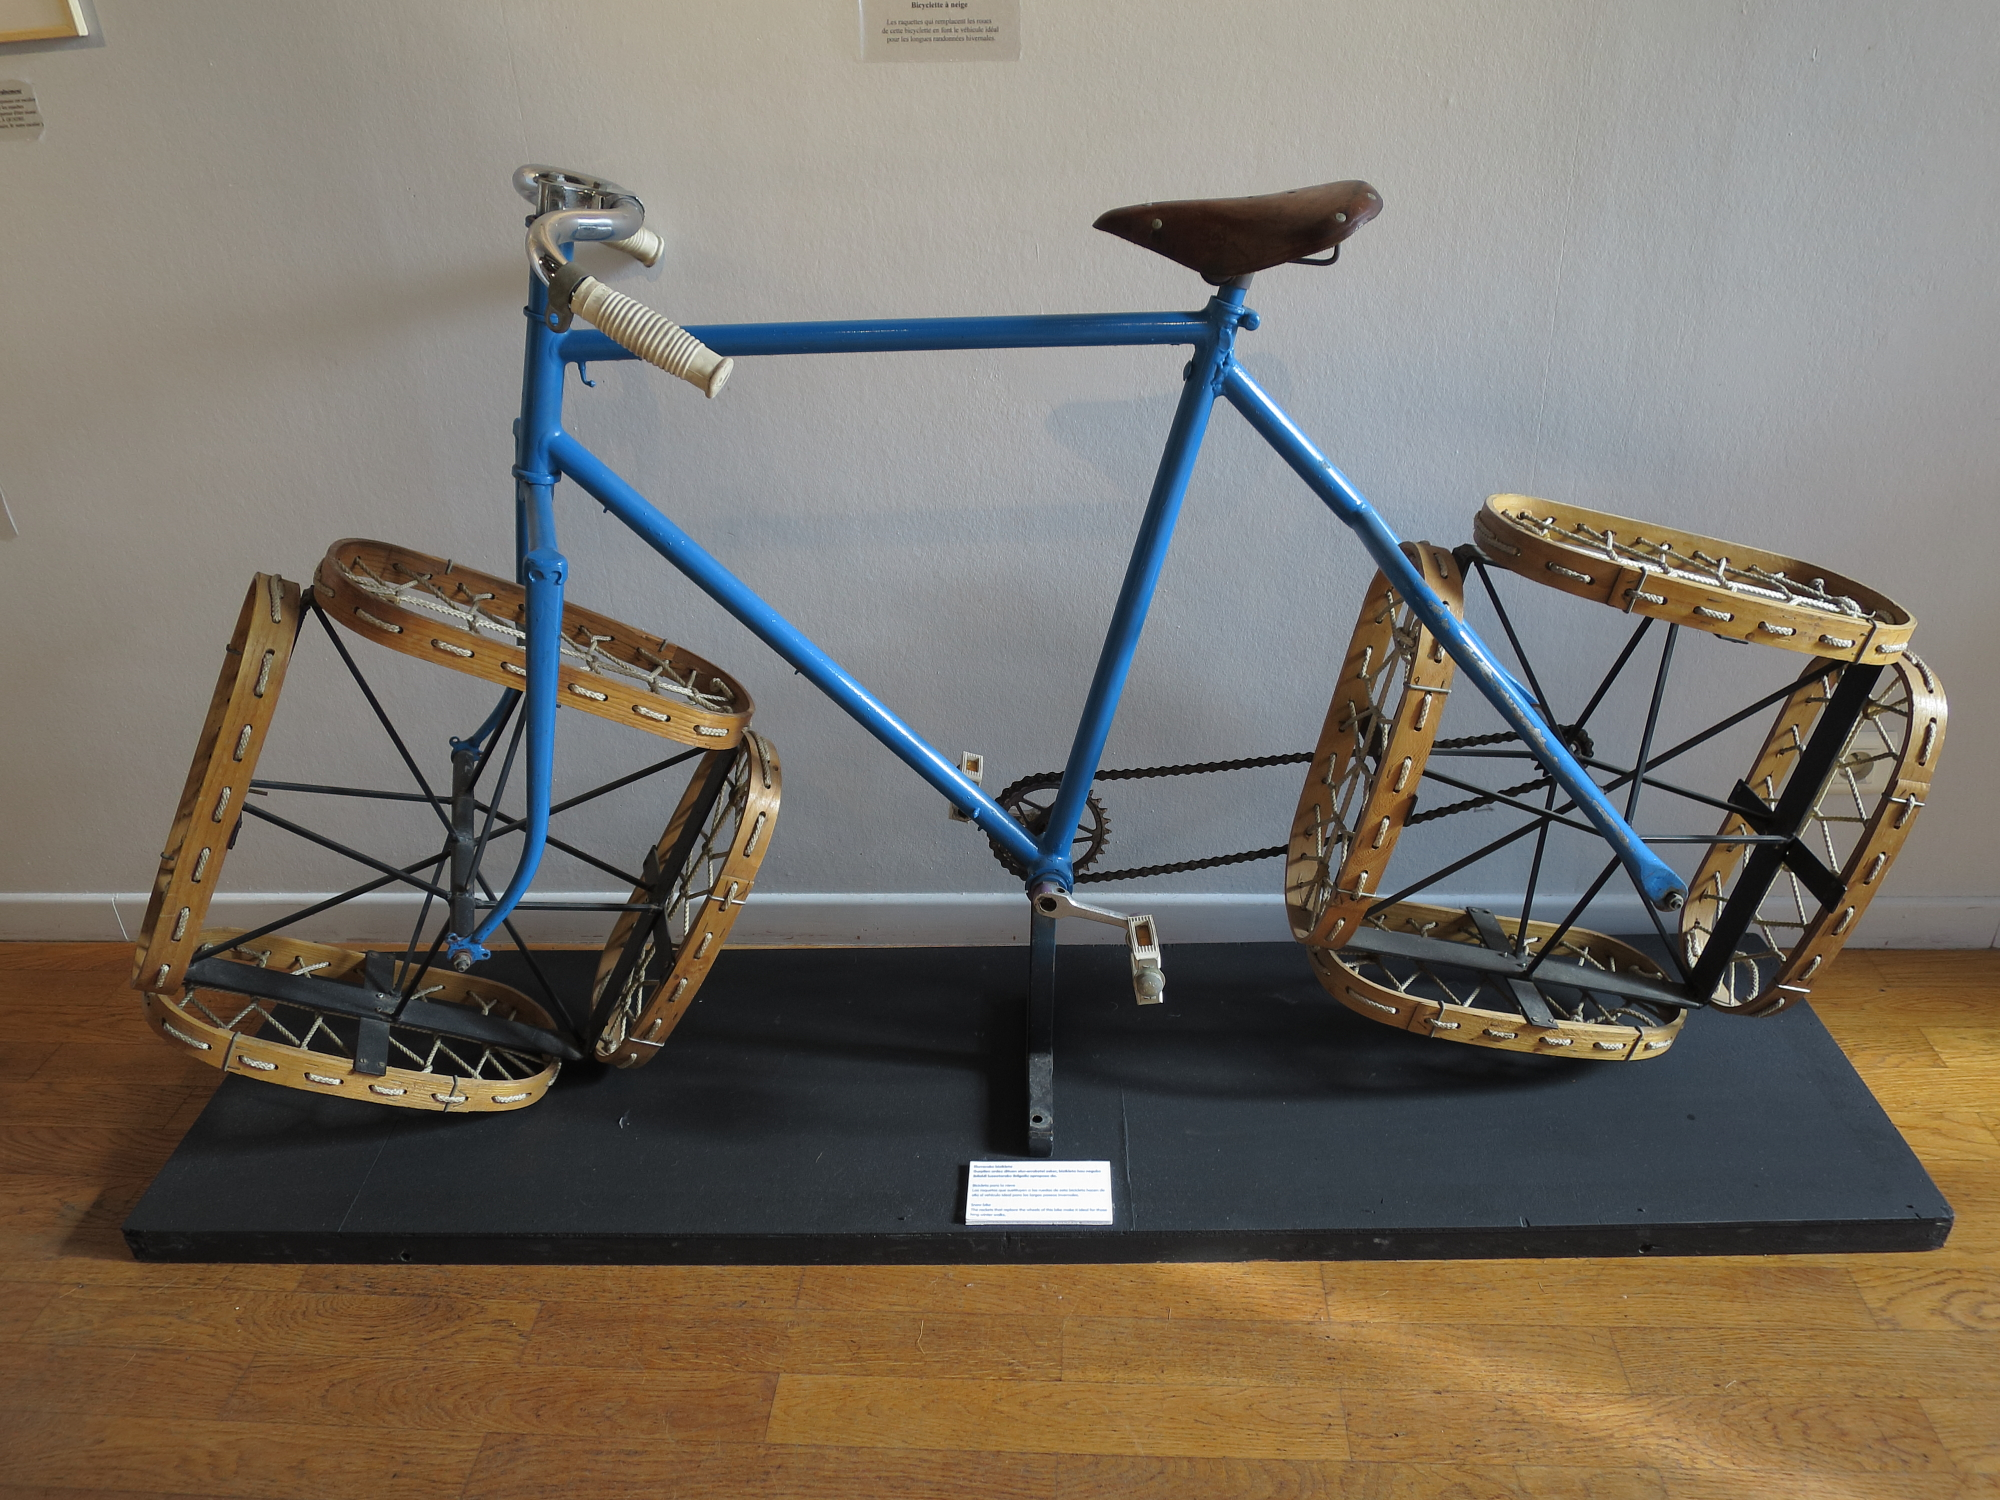 Snow bicycle by Jacques Carelman at the Galerie les Yeux Fertiles